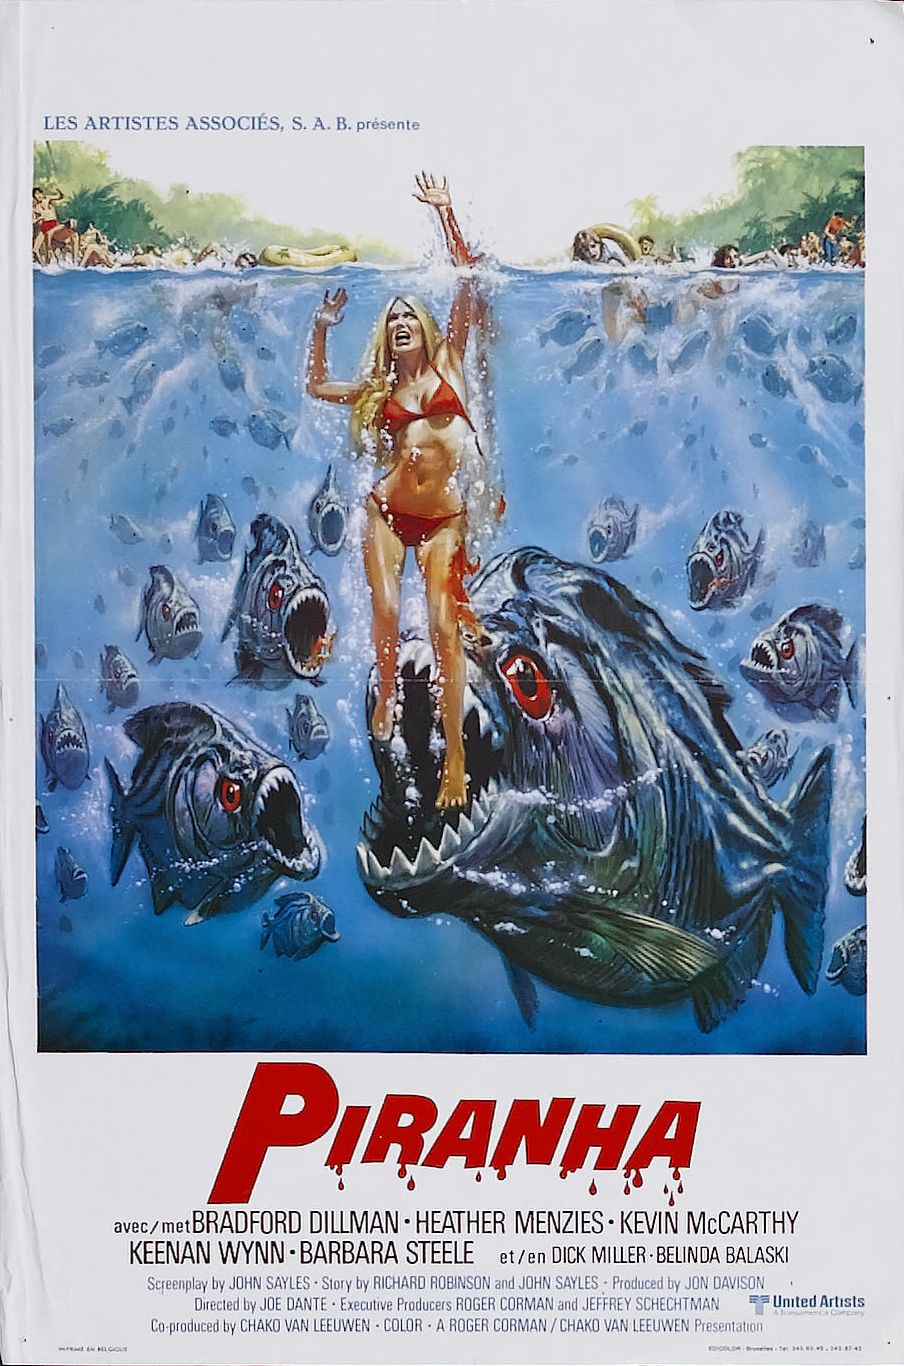 https://i2.wp.com/www.arte.tv/sites/fr/olivierpere/files/2013/04/piranha_poster_02.jpg